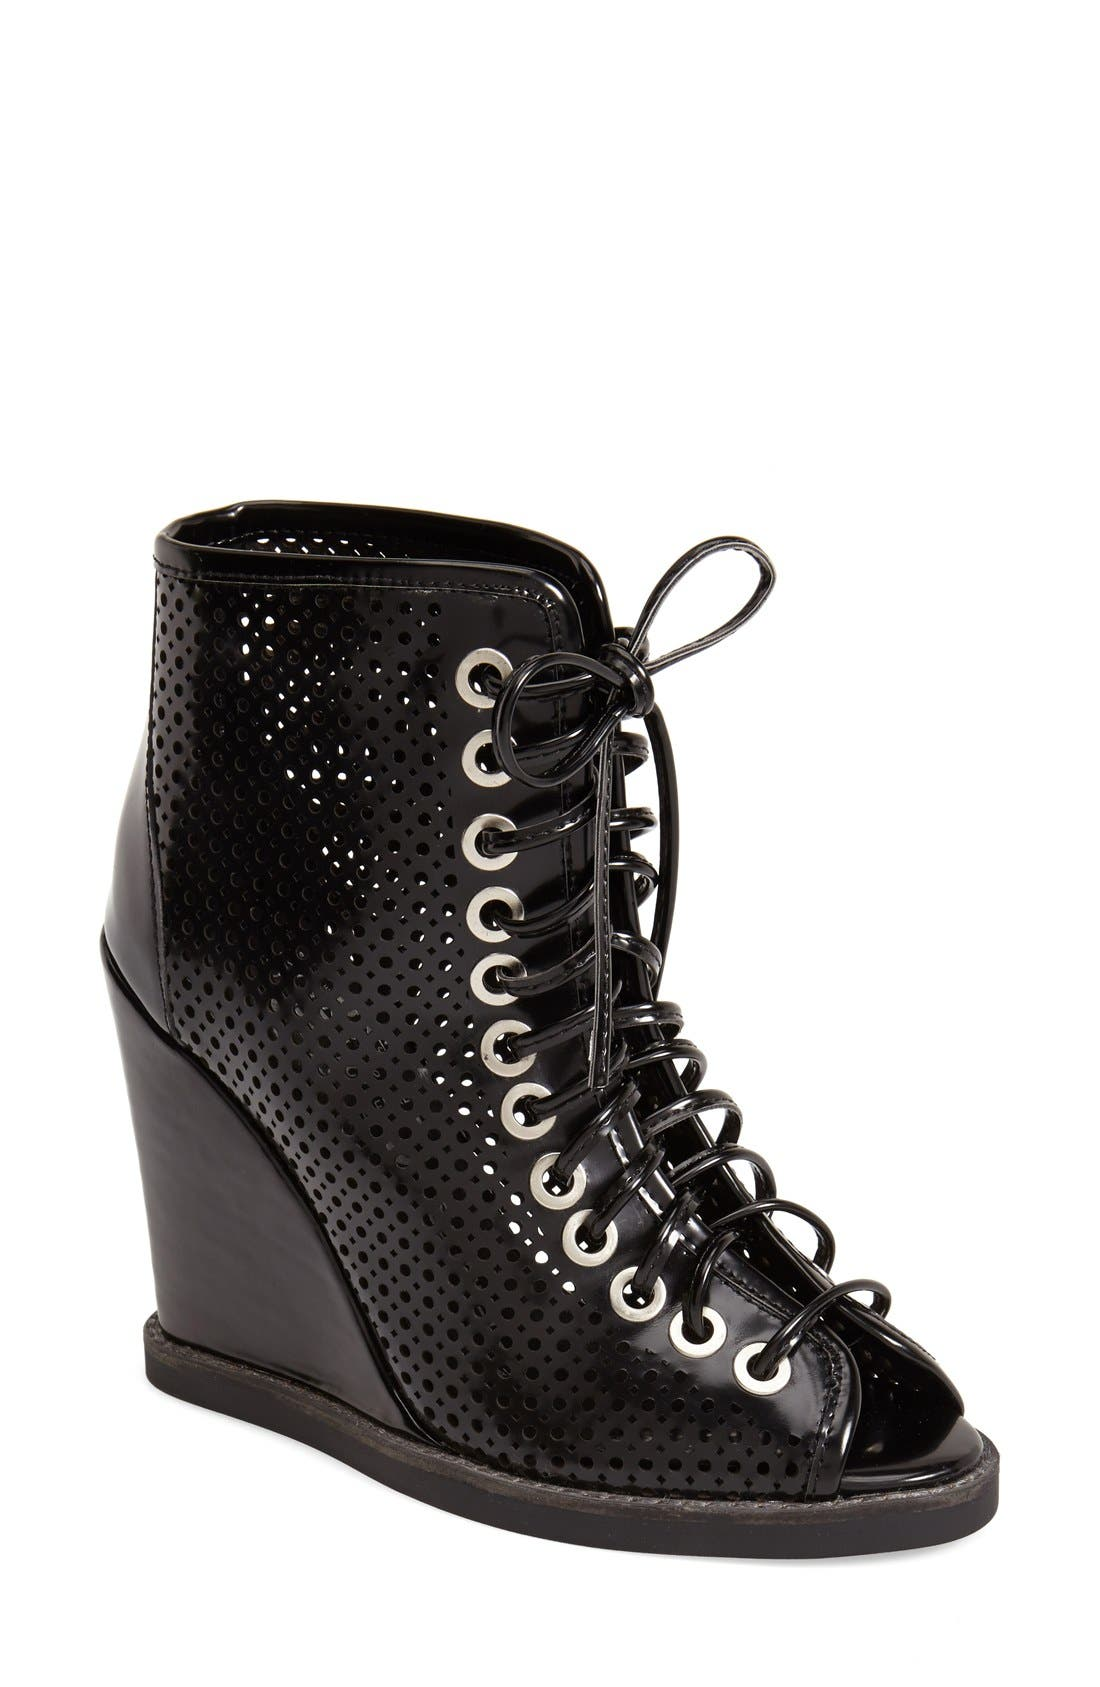 Main Image - Jeffrey Campbell 'Adelicia' Ankle Boot (Women)